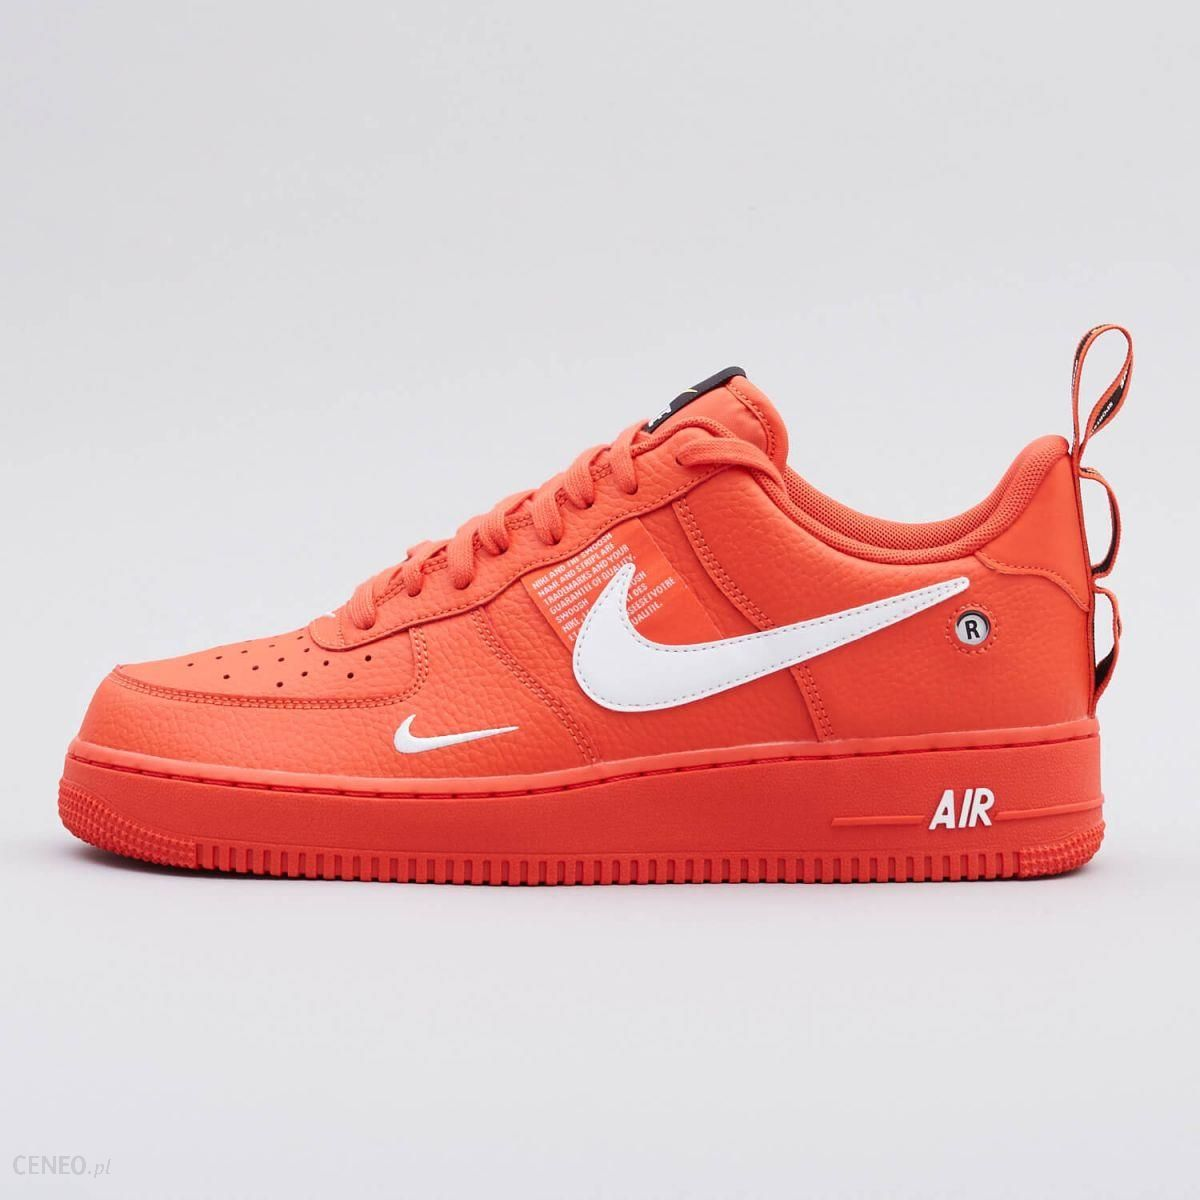 Nike Air Force 1 Low '07 LV8 Red AJ7747 600, r. 38